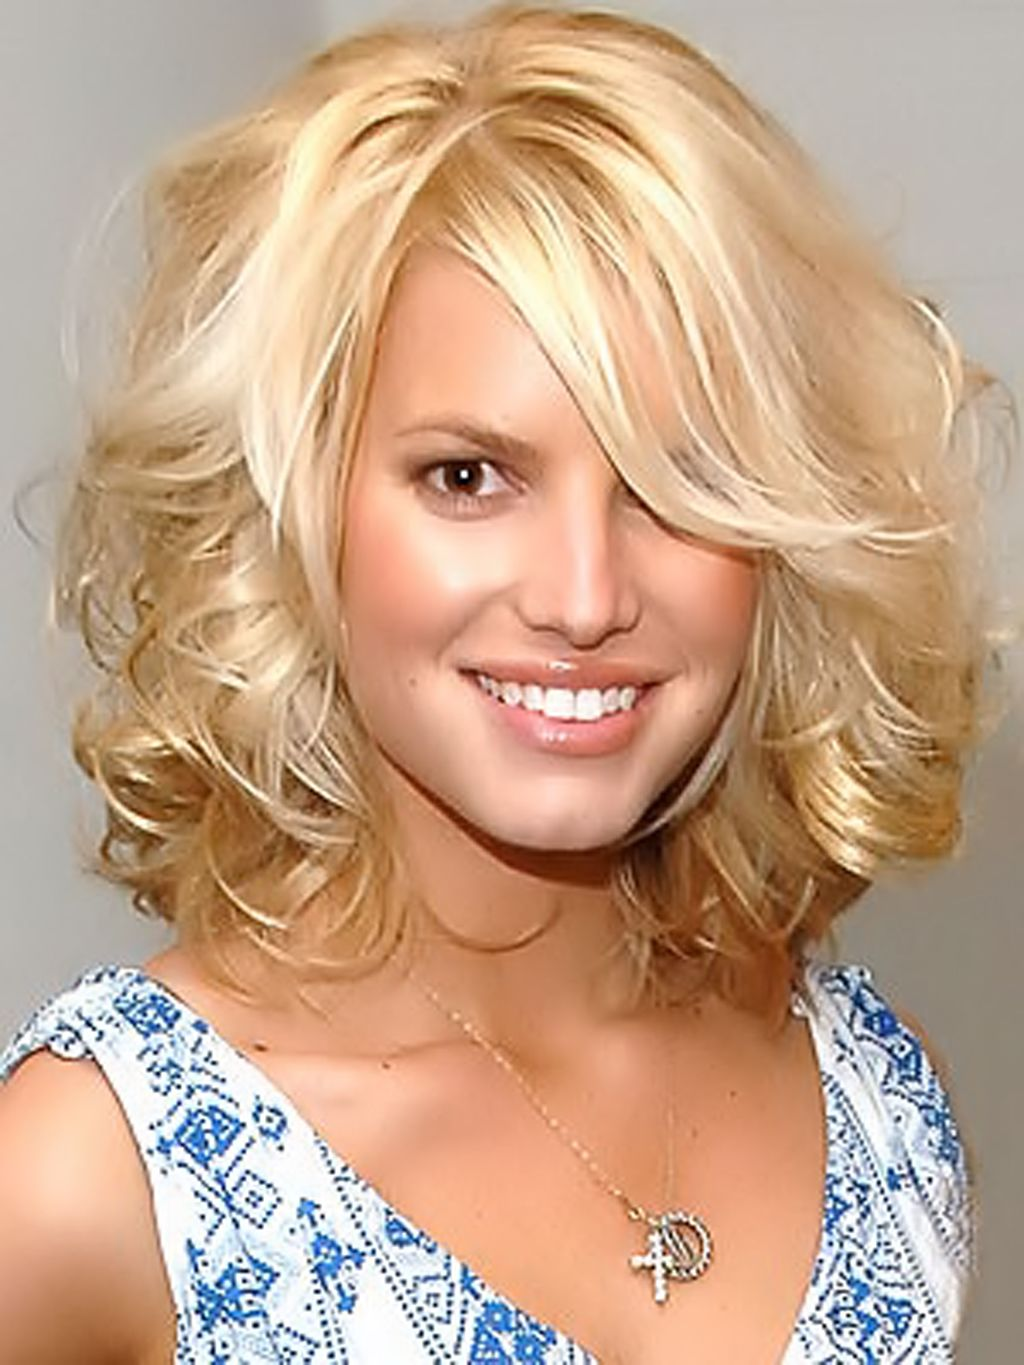 Hairstyles jessica simpson beauty makeup u hairstyles